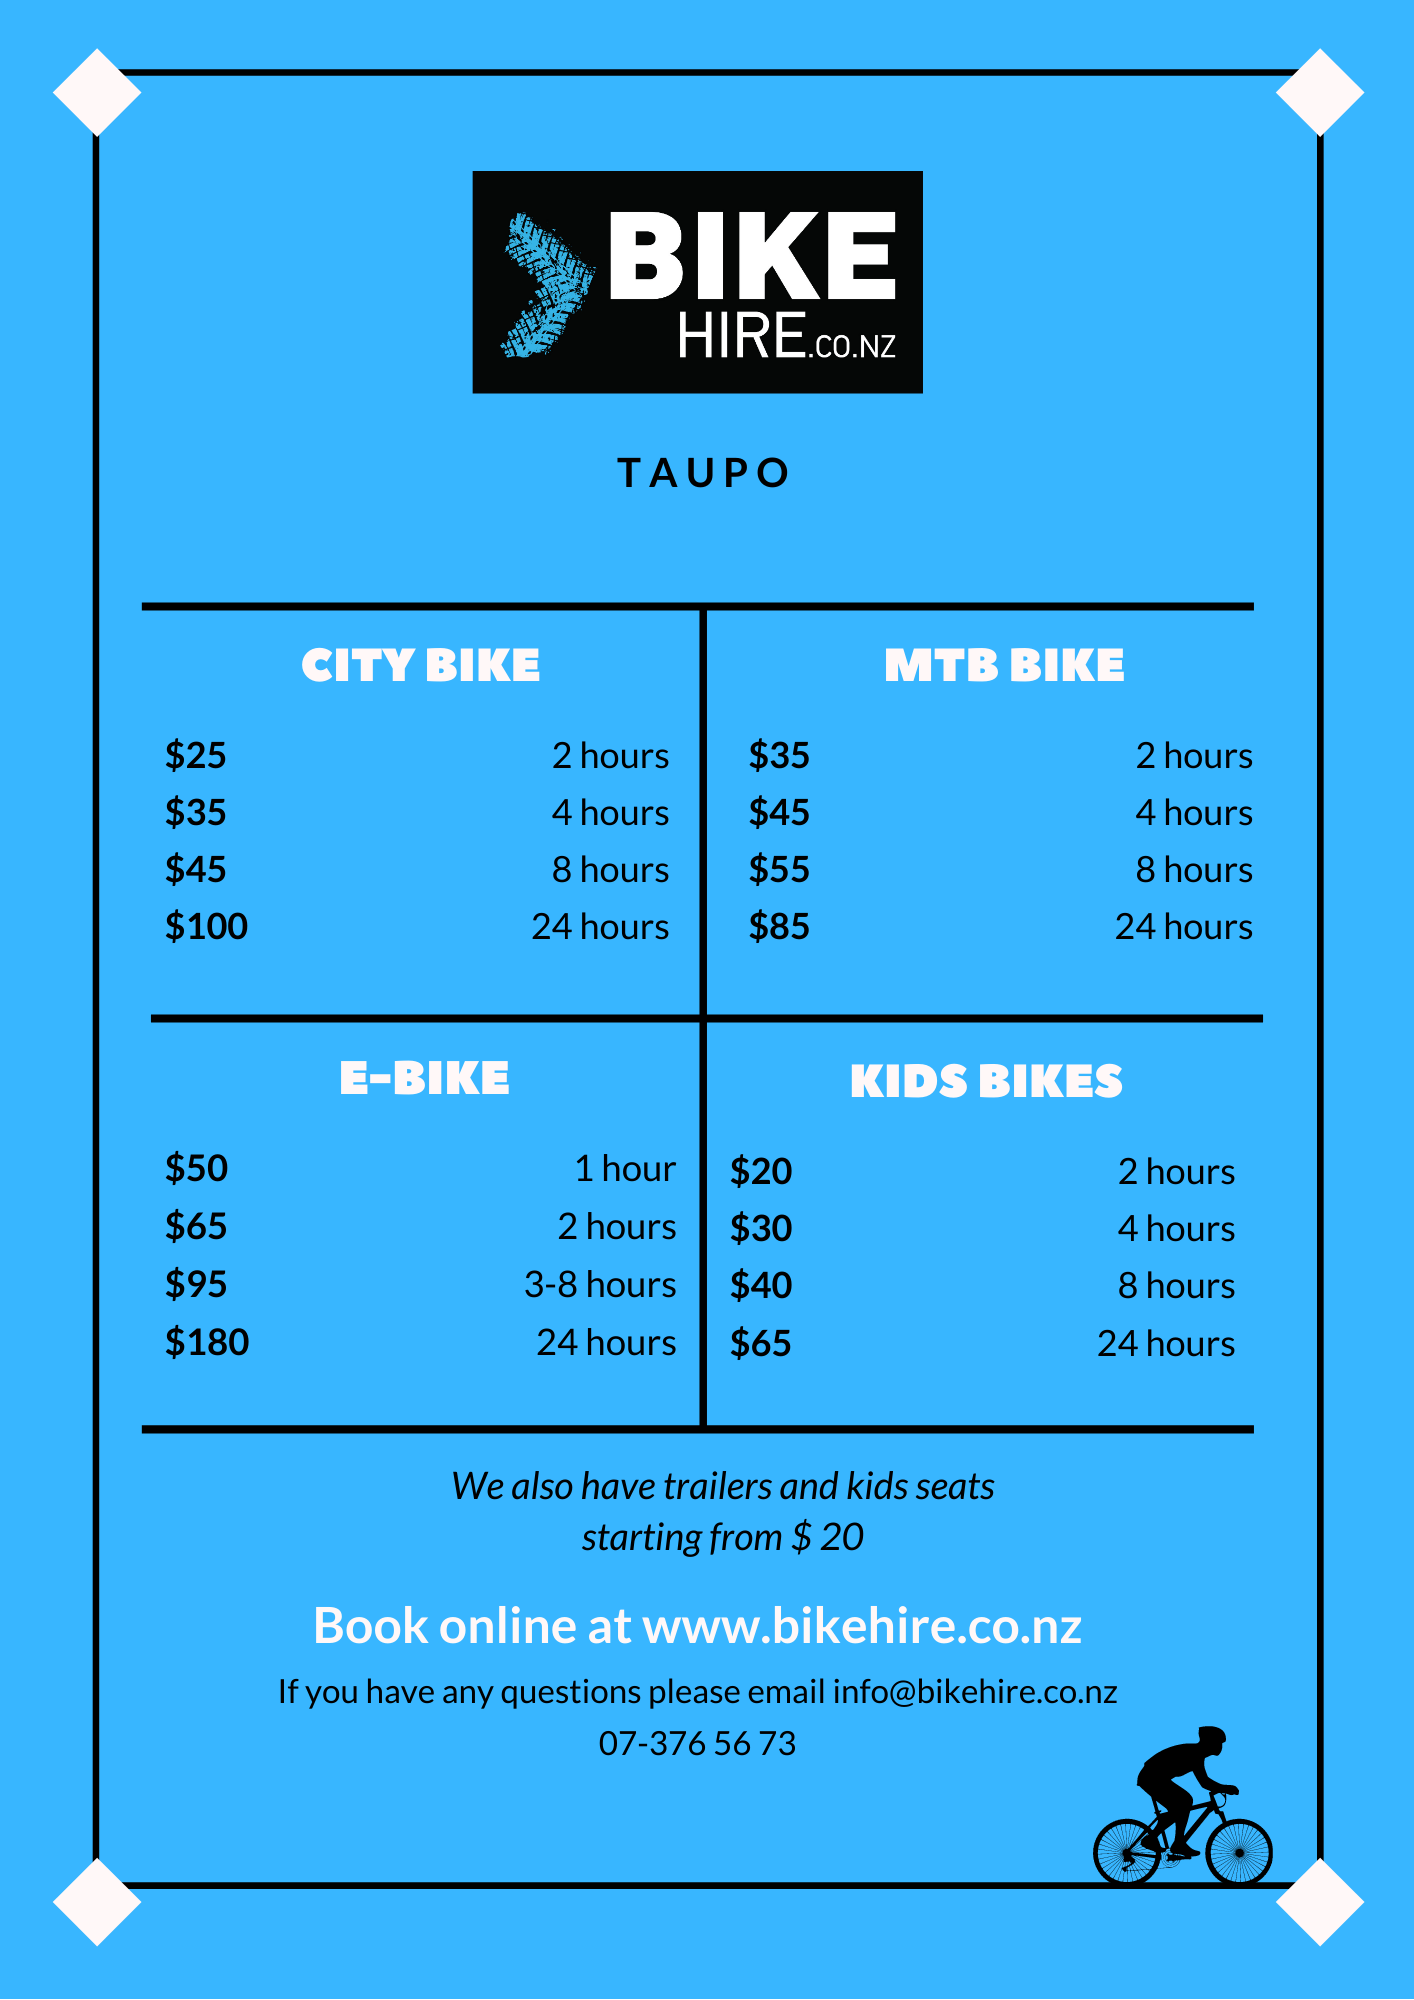 bike hire prices in taupo